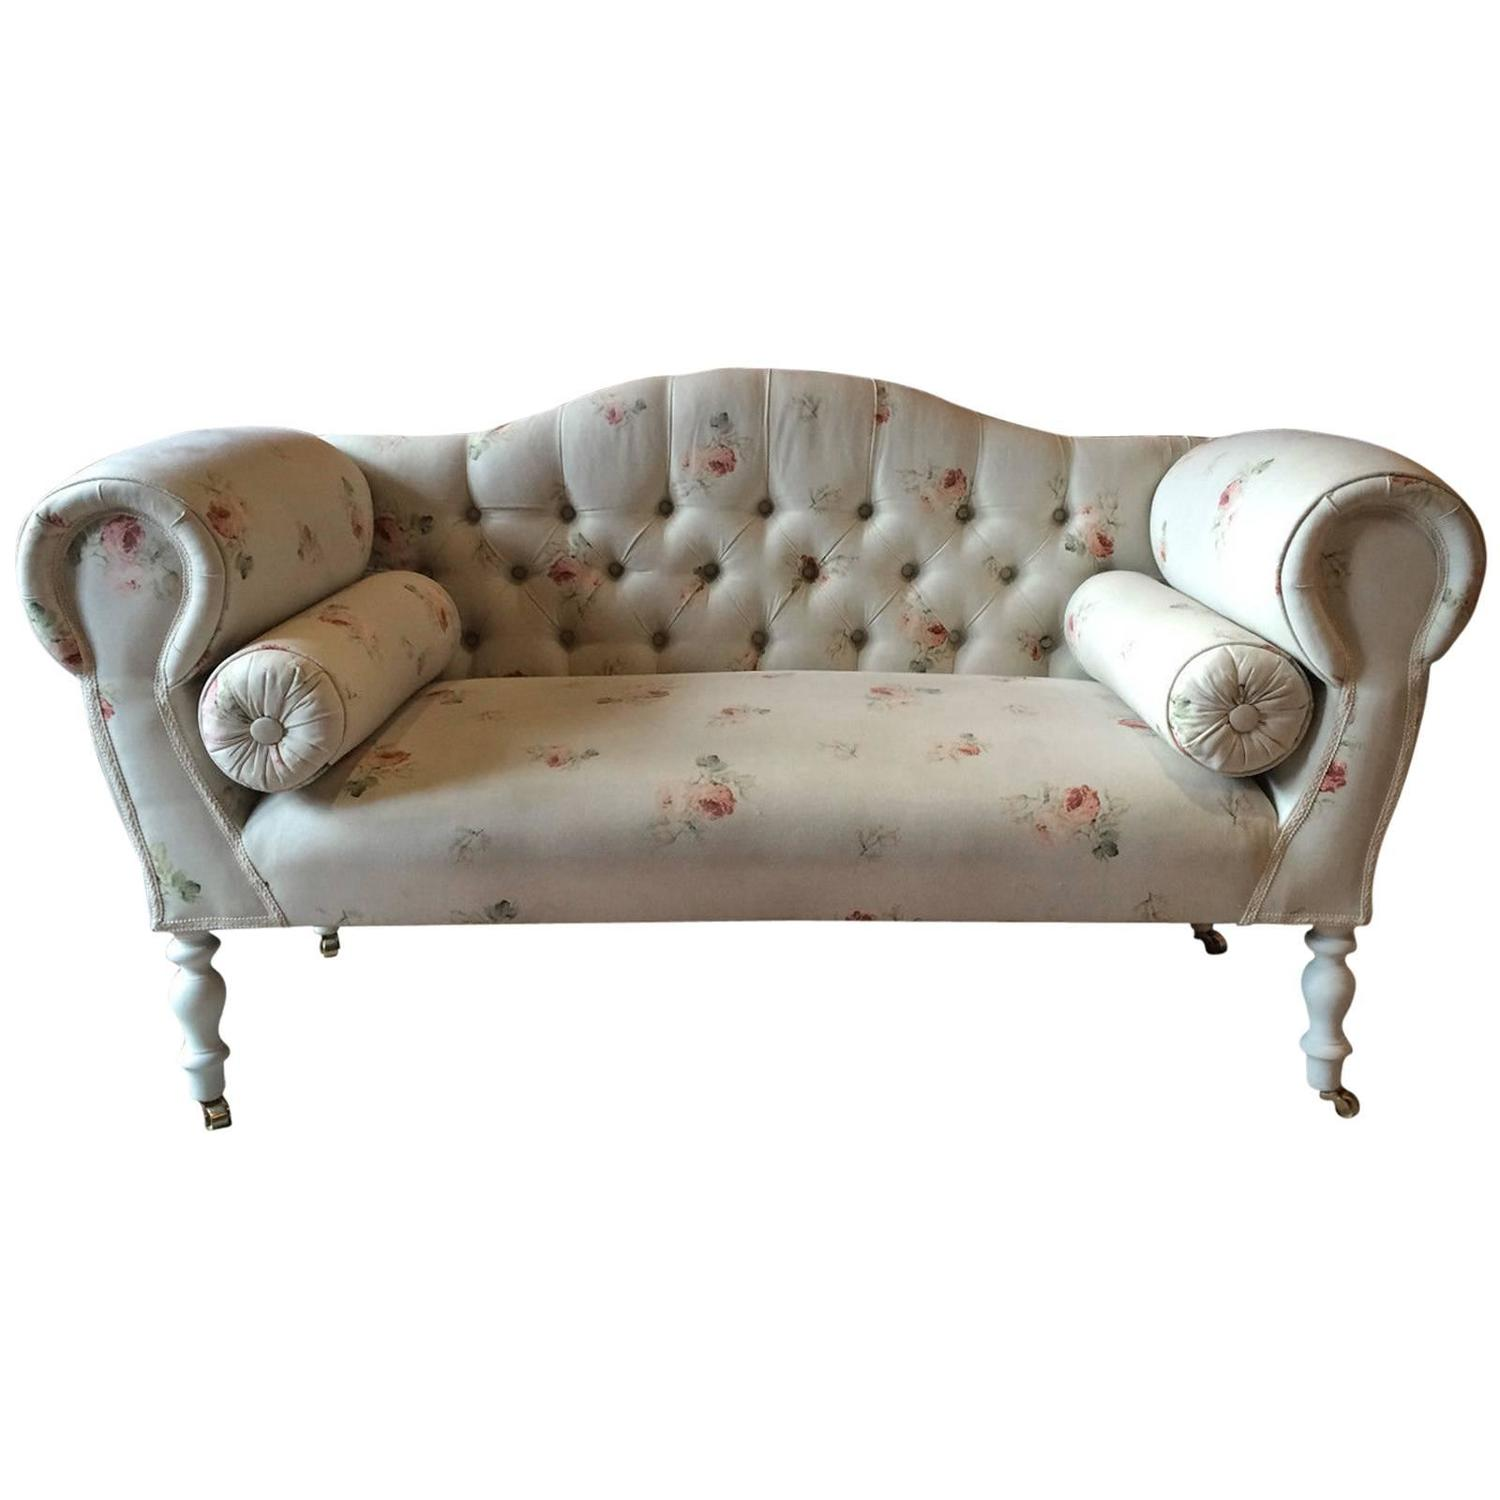 Stunning Laura Ashley Sofa Shabby Chic Button Back Settee Antique